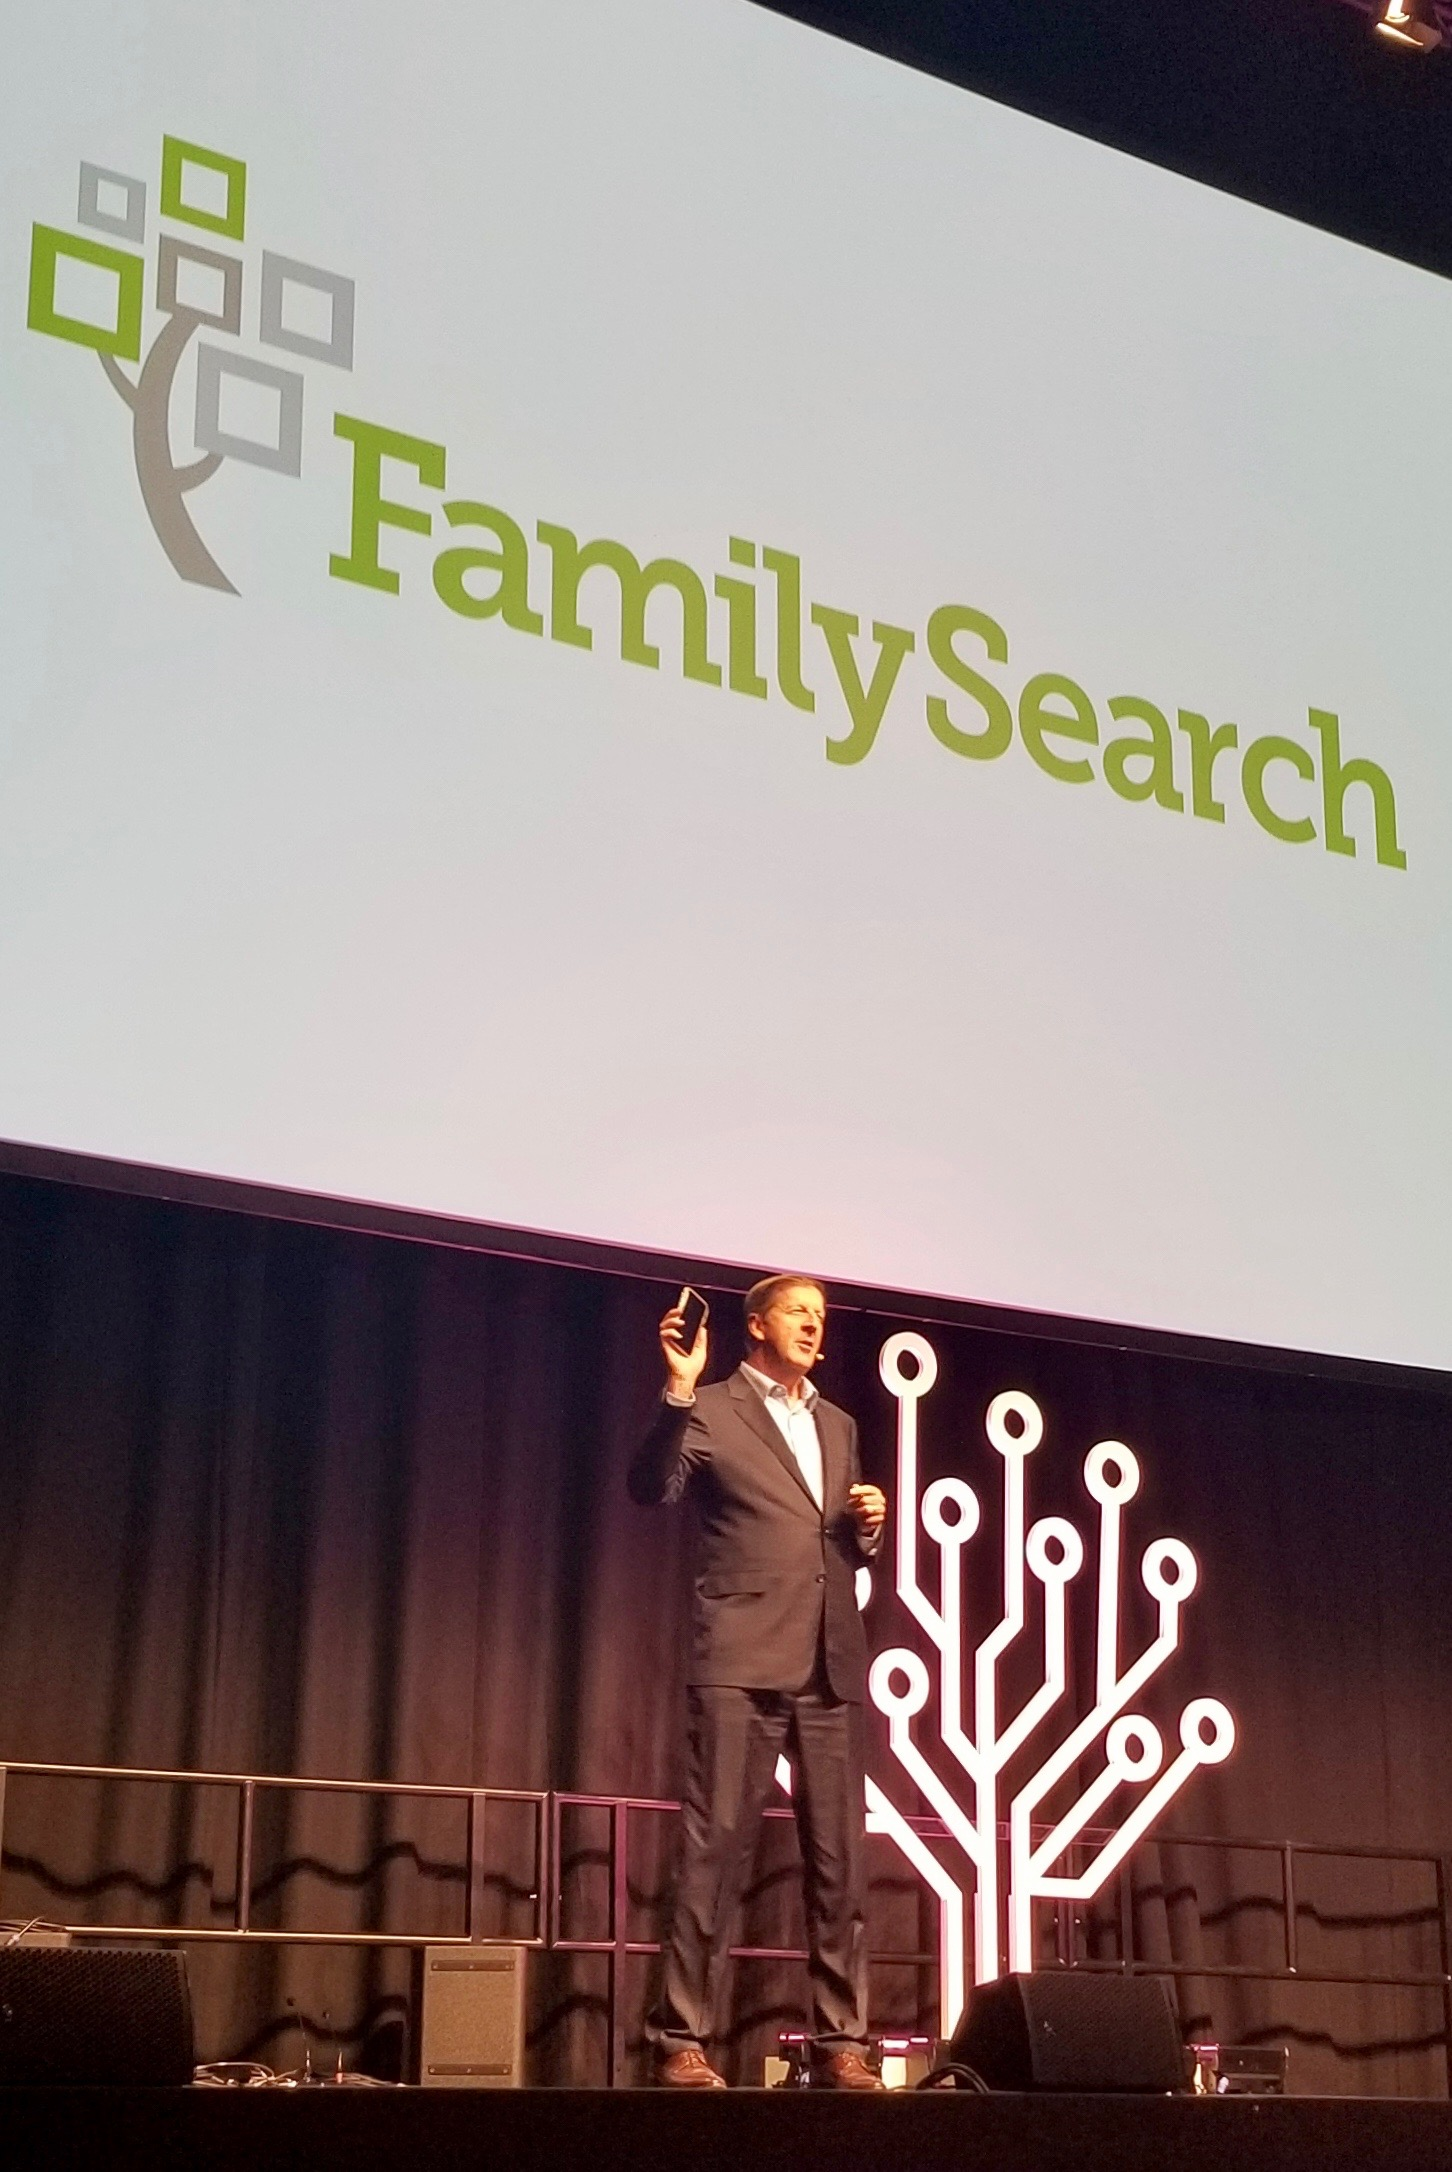 FamilySearch CEO Steve Rockwood holds a cellphone as a reminder of the Family Tree app while speaking during RootsTech London in the London ExCel auditorium on Thursday, Oct. 24, 2019.